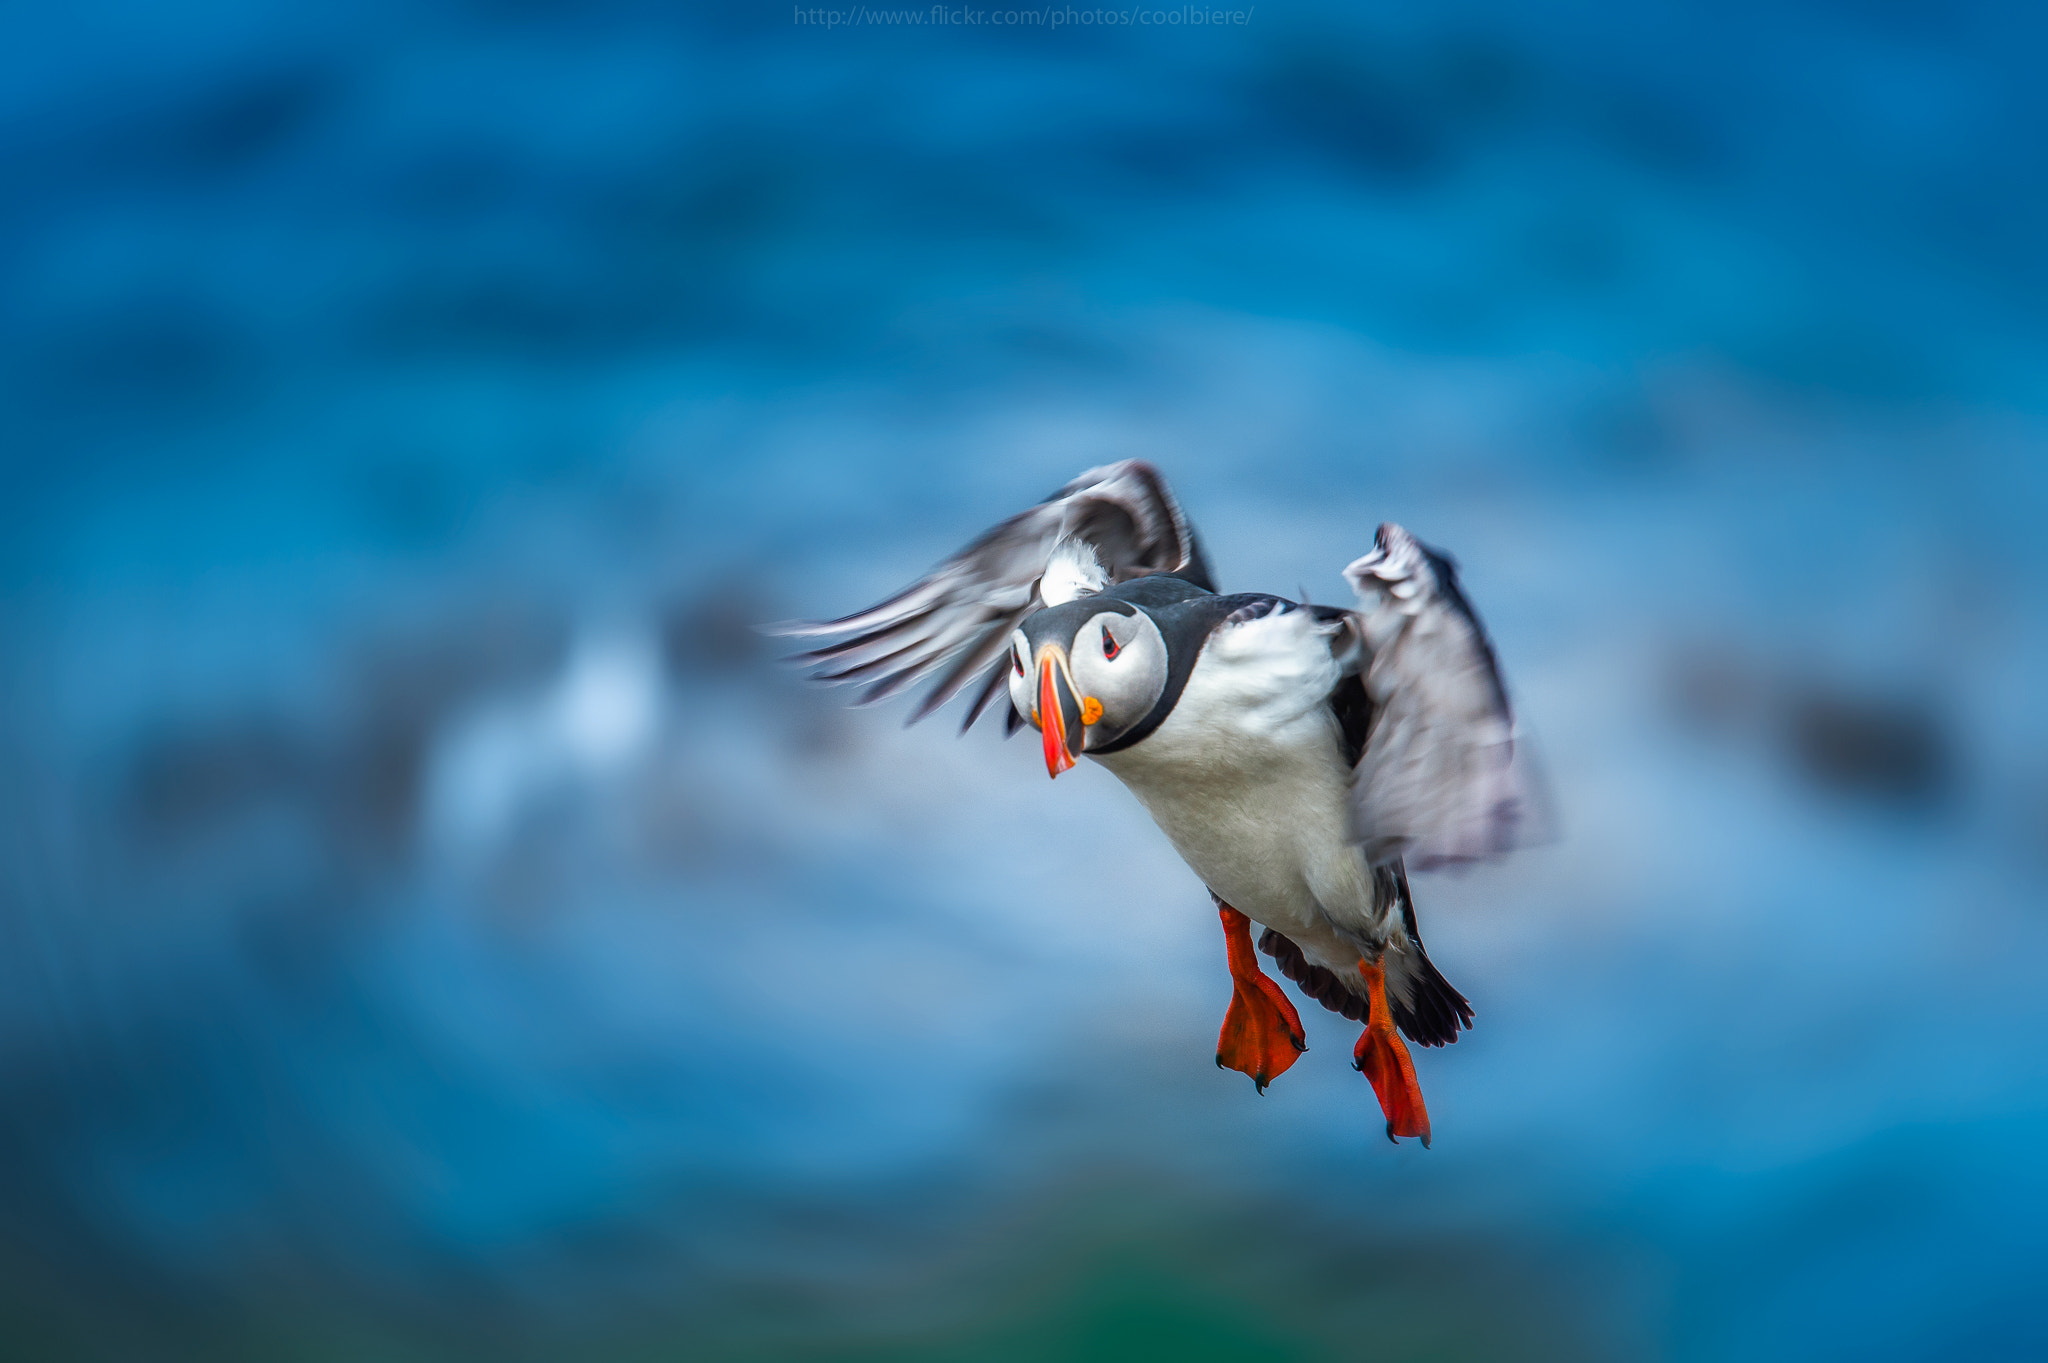 Photograph Fly baby Fly by Coolbiere. A. on 500px